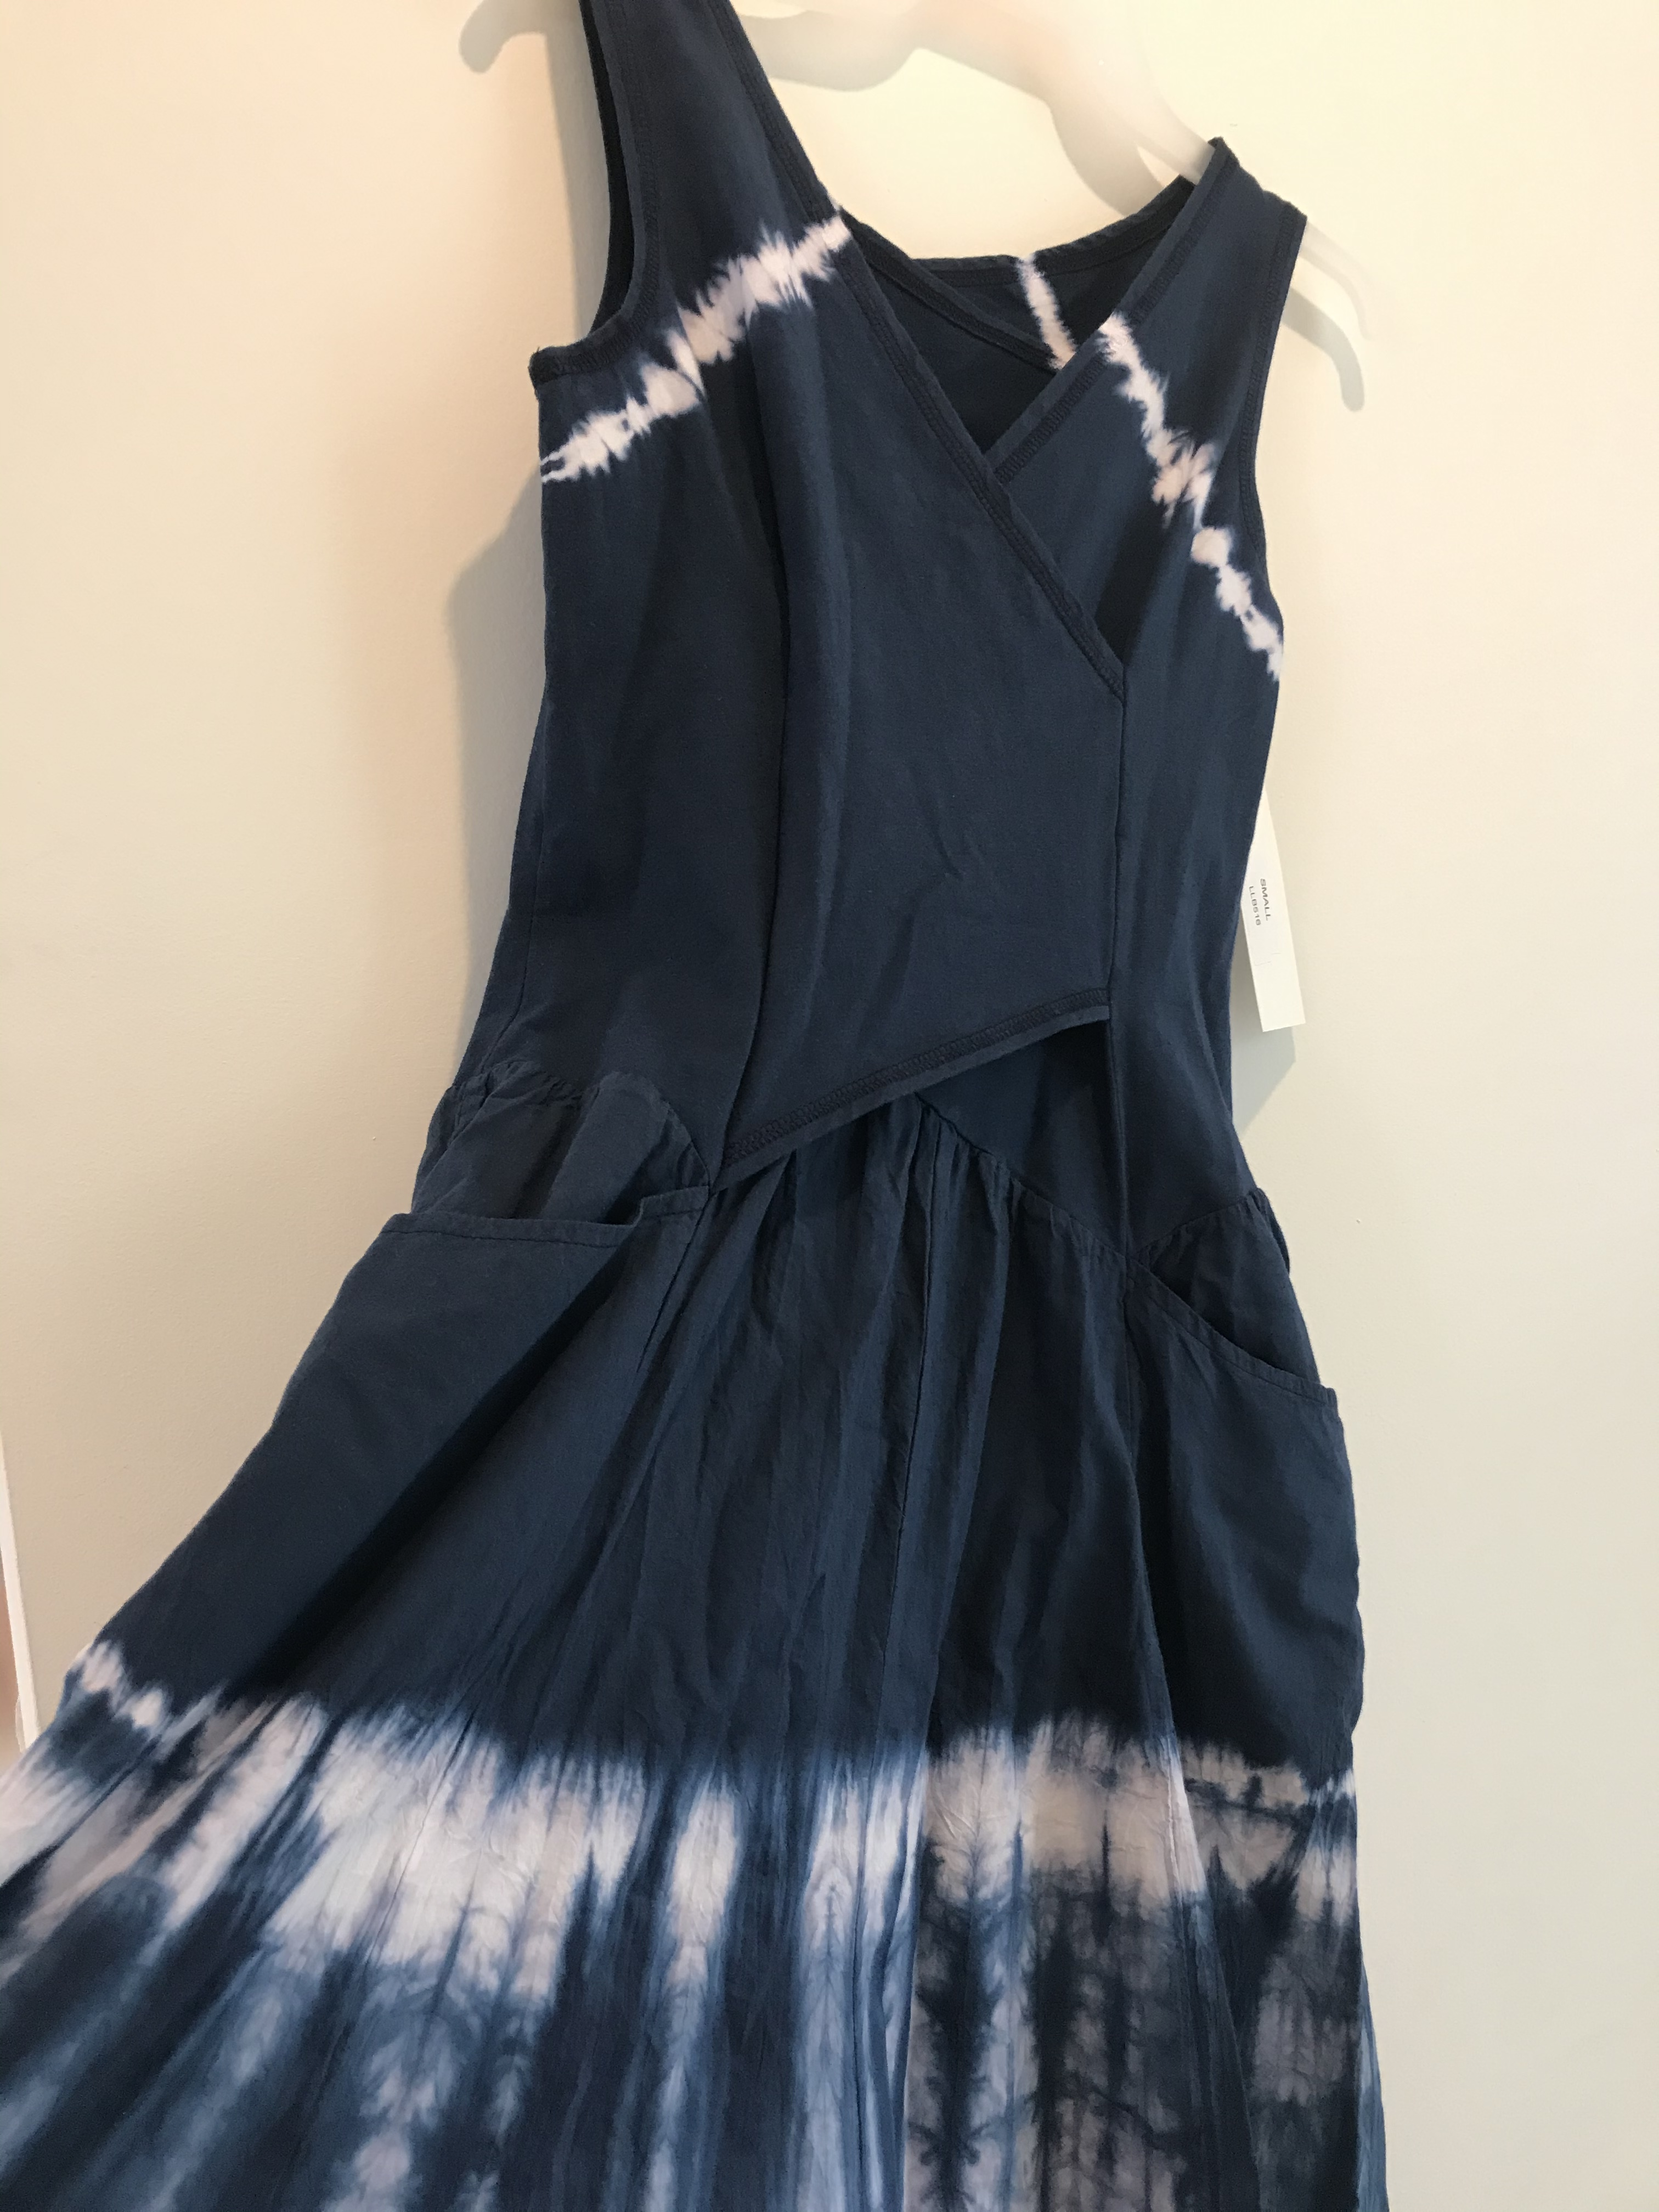 Luna Luz: Cross Over Bodice Maxi Dress (Ships Immed, 1 Left in Inkwell!) LL_516_INKWELL